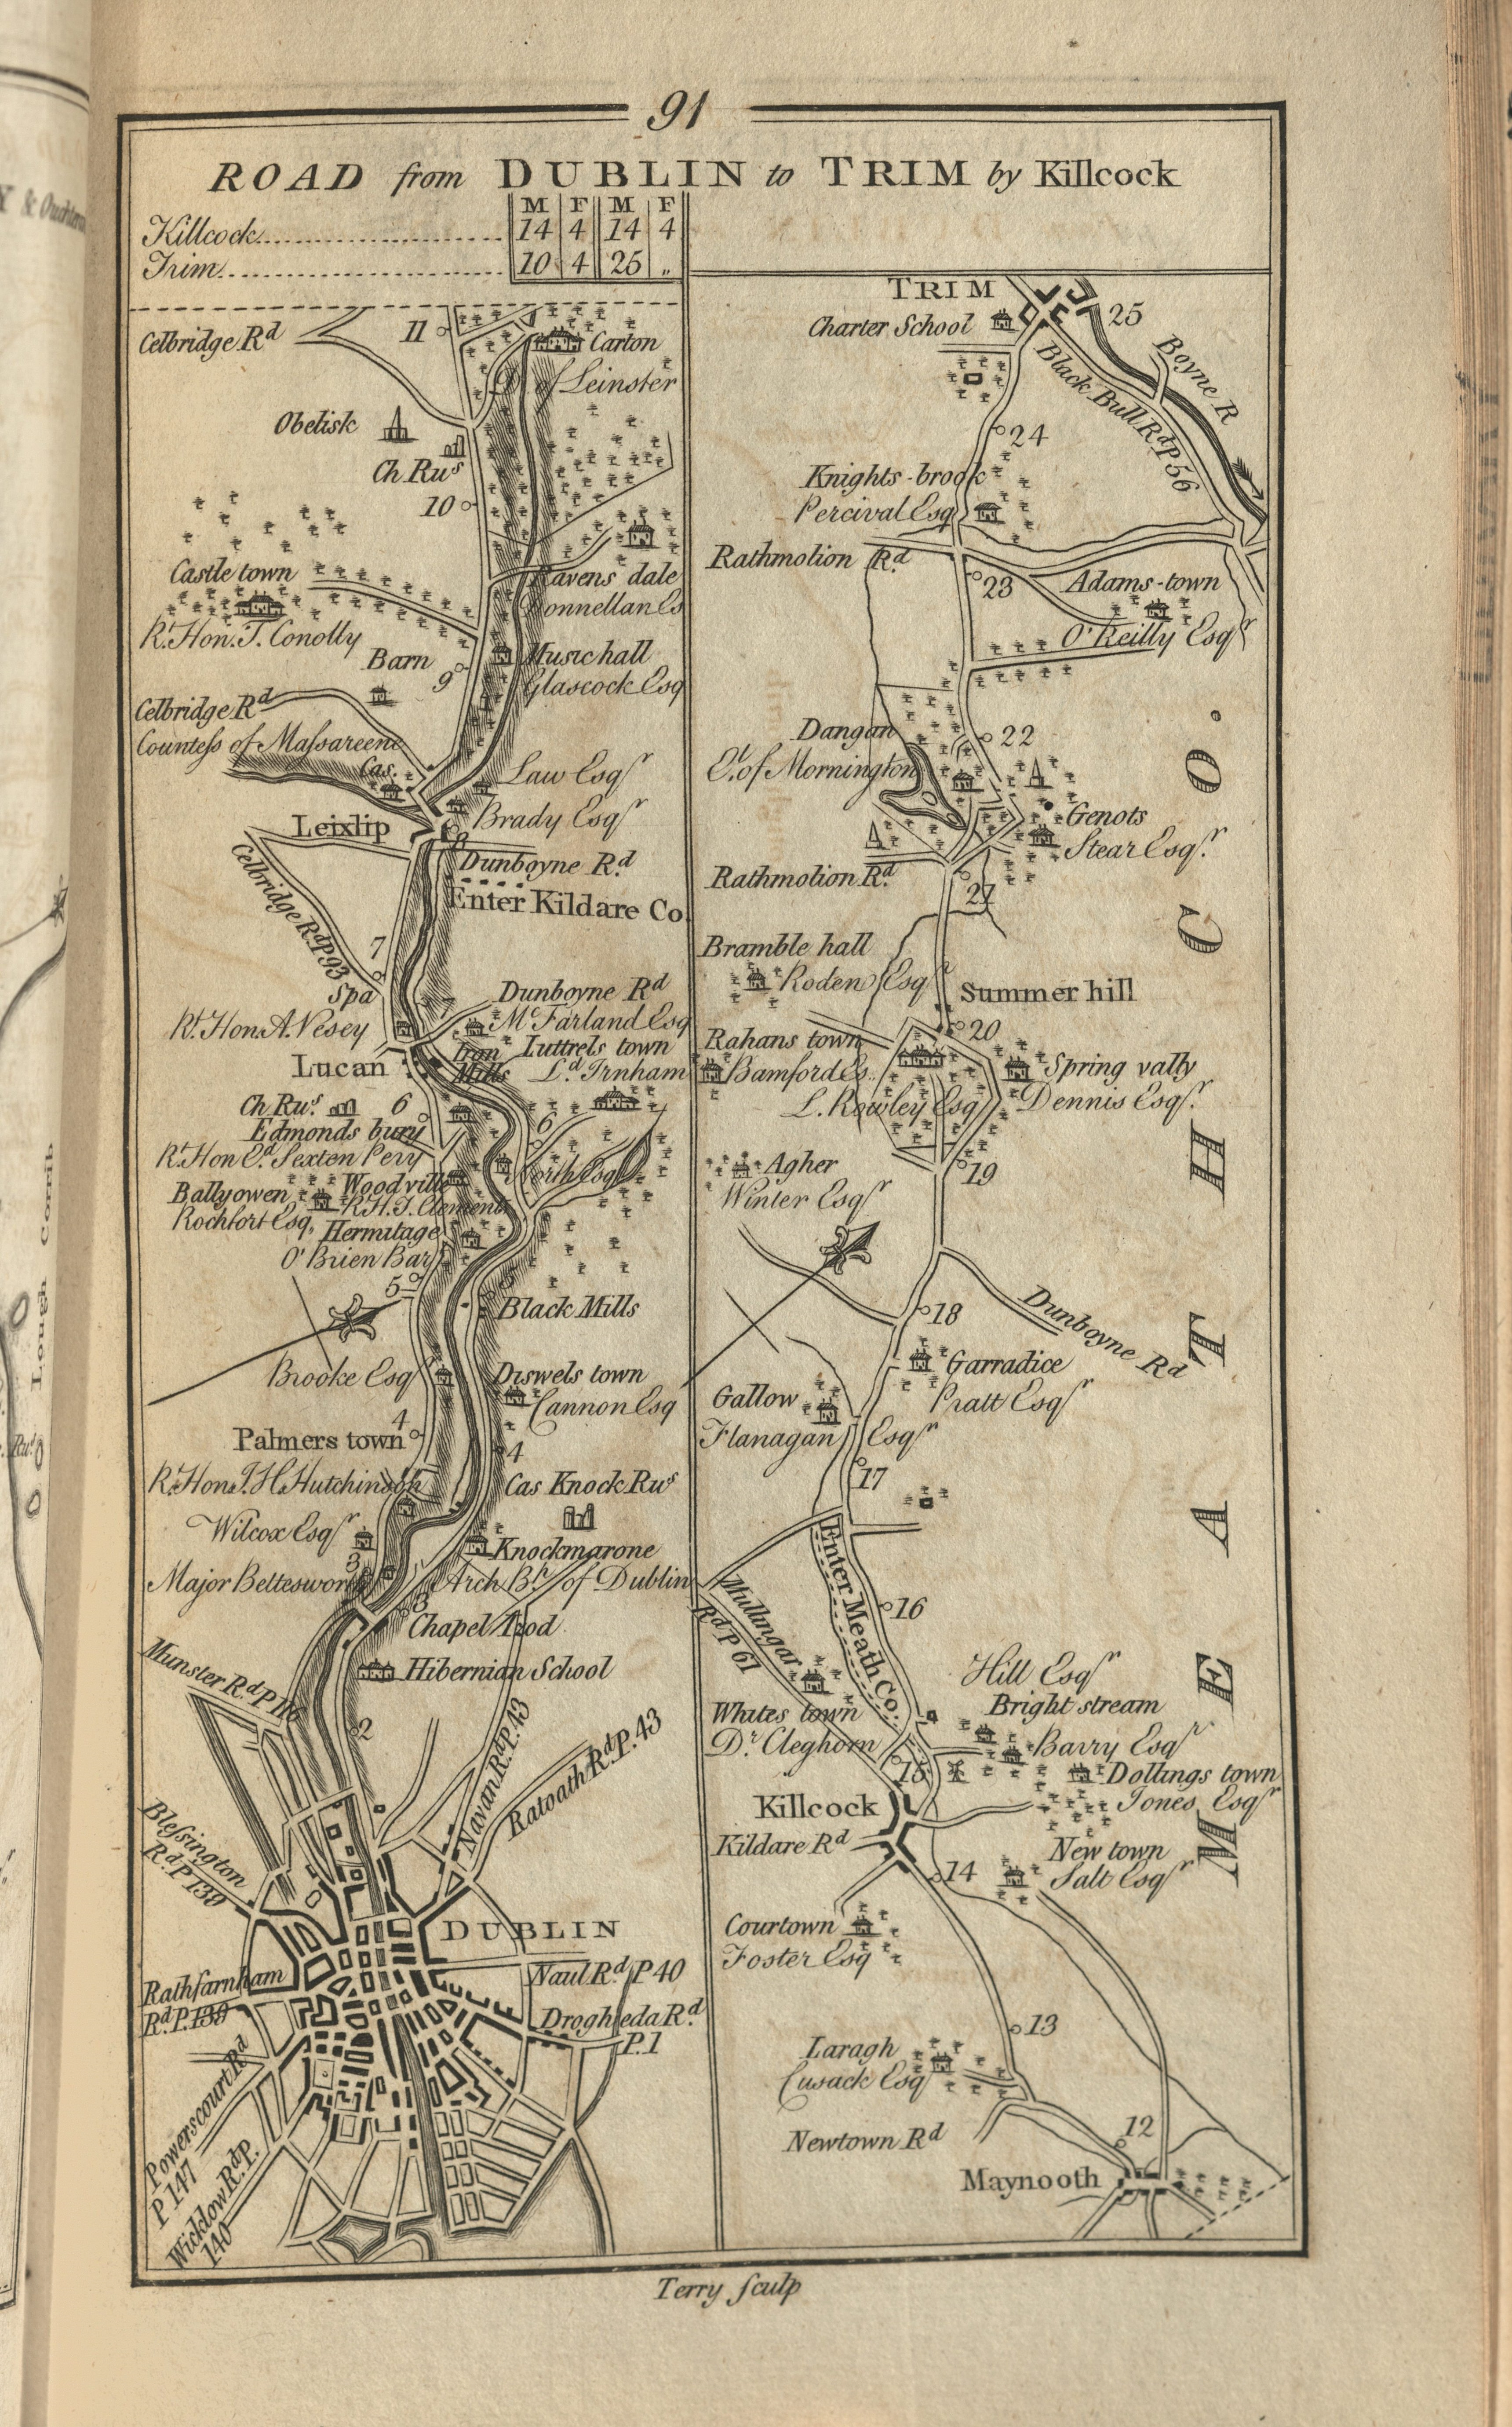 Map showing Irish roads from Dublin to Trim by Killock